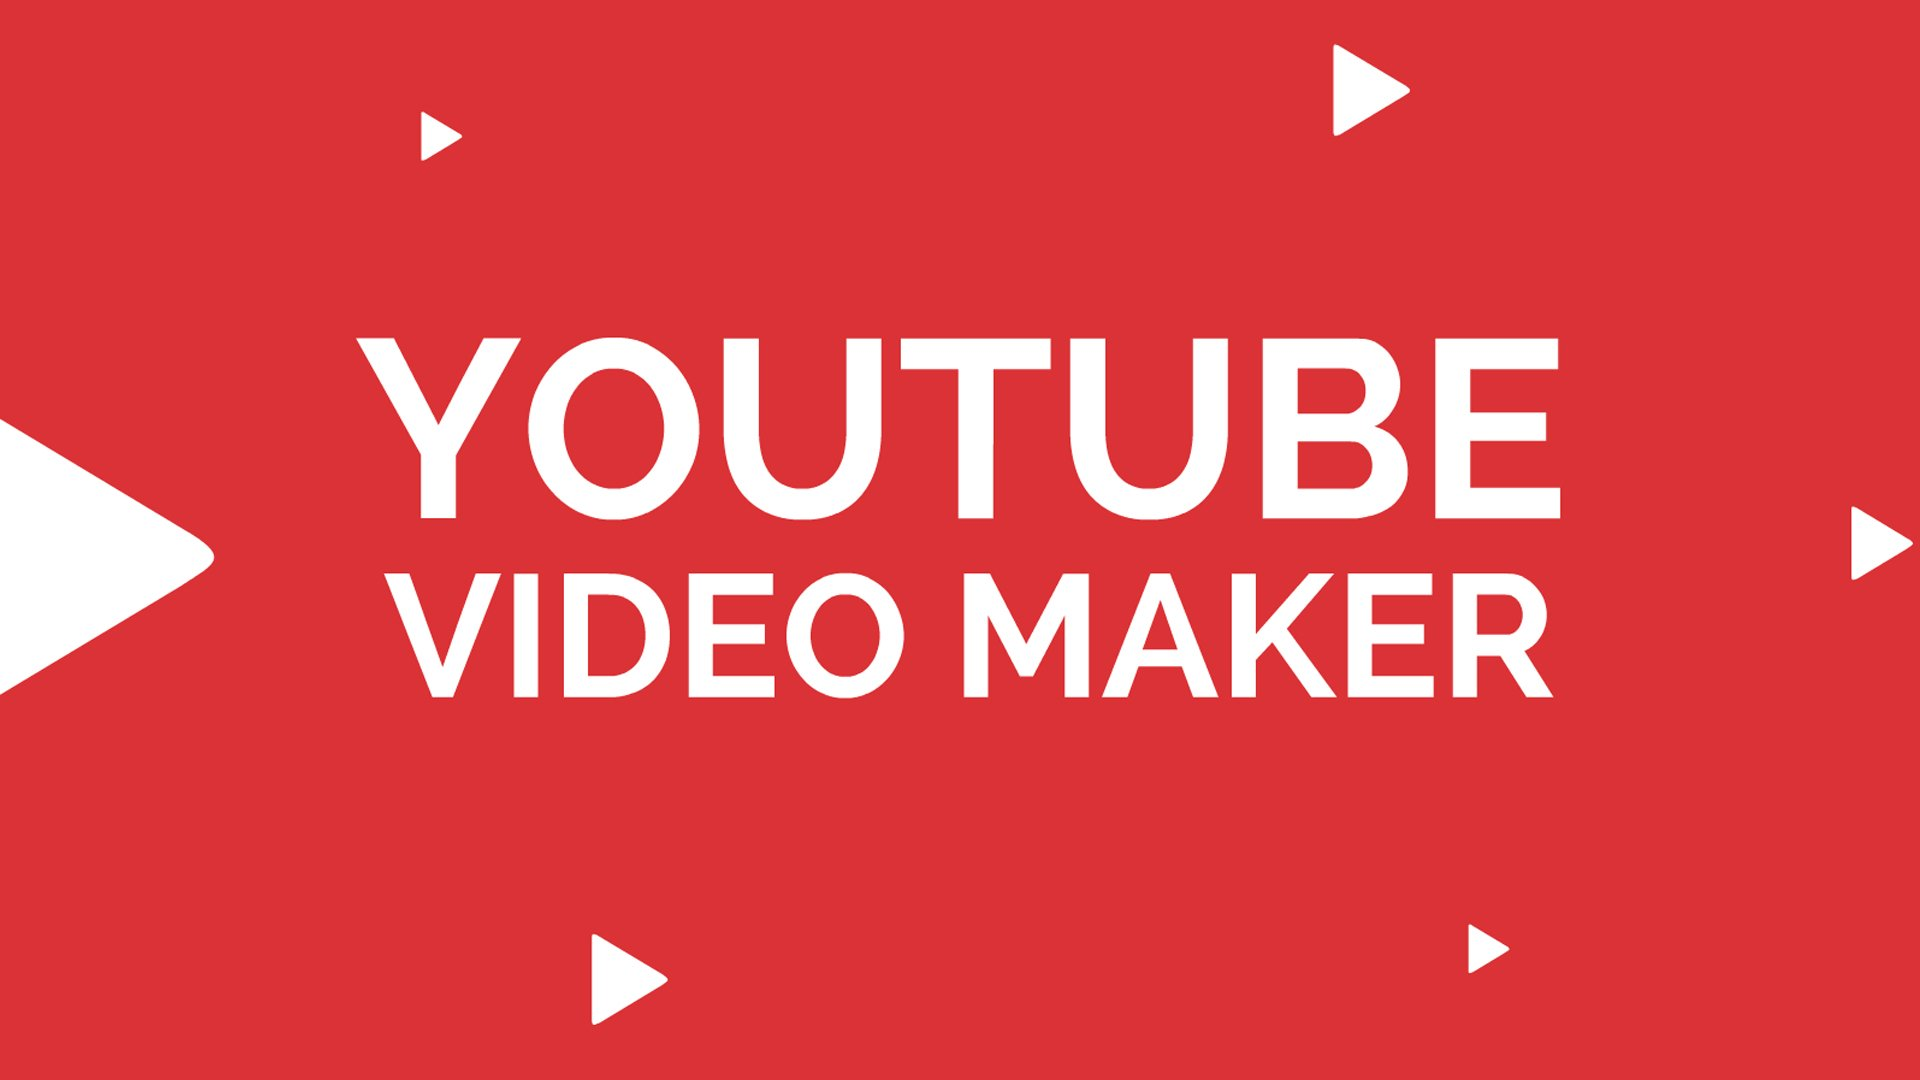 YouTube Video Maker: Create animated videos for free!